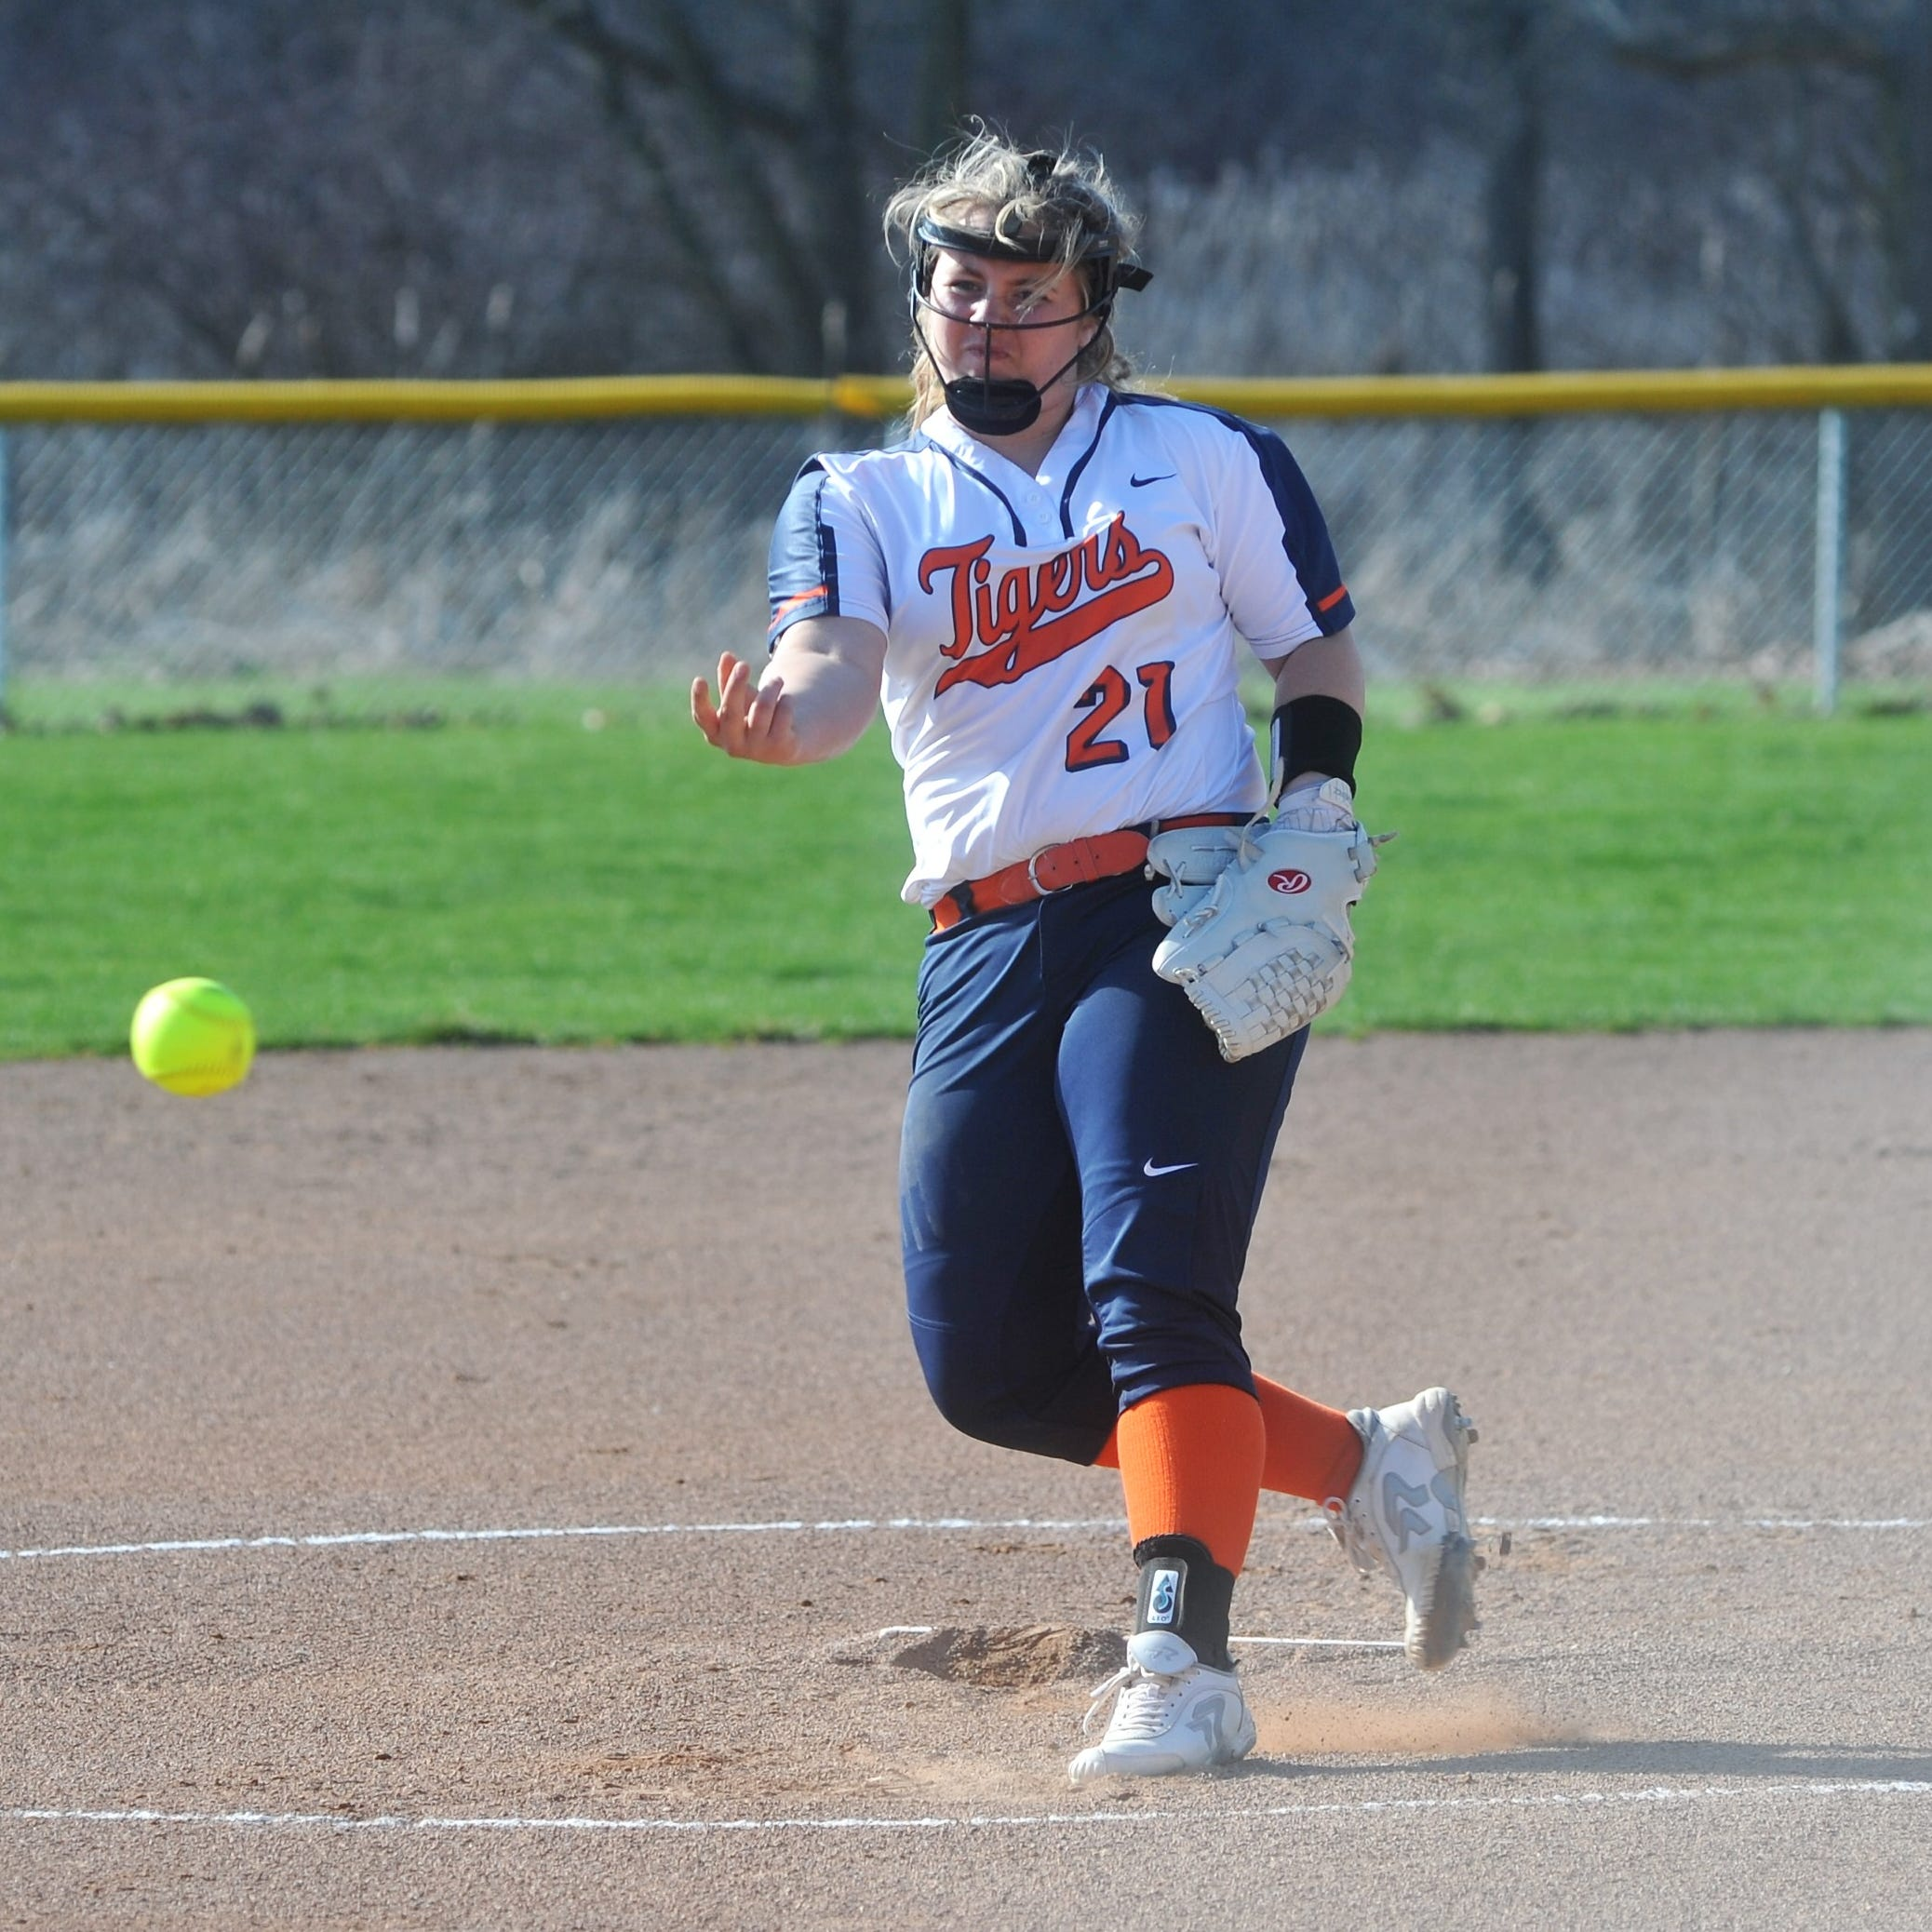 Perfect pair: Thomas' perfect game, Schieber's bat have Galion back on track